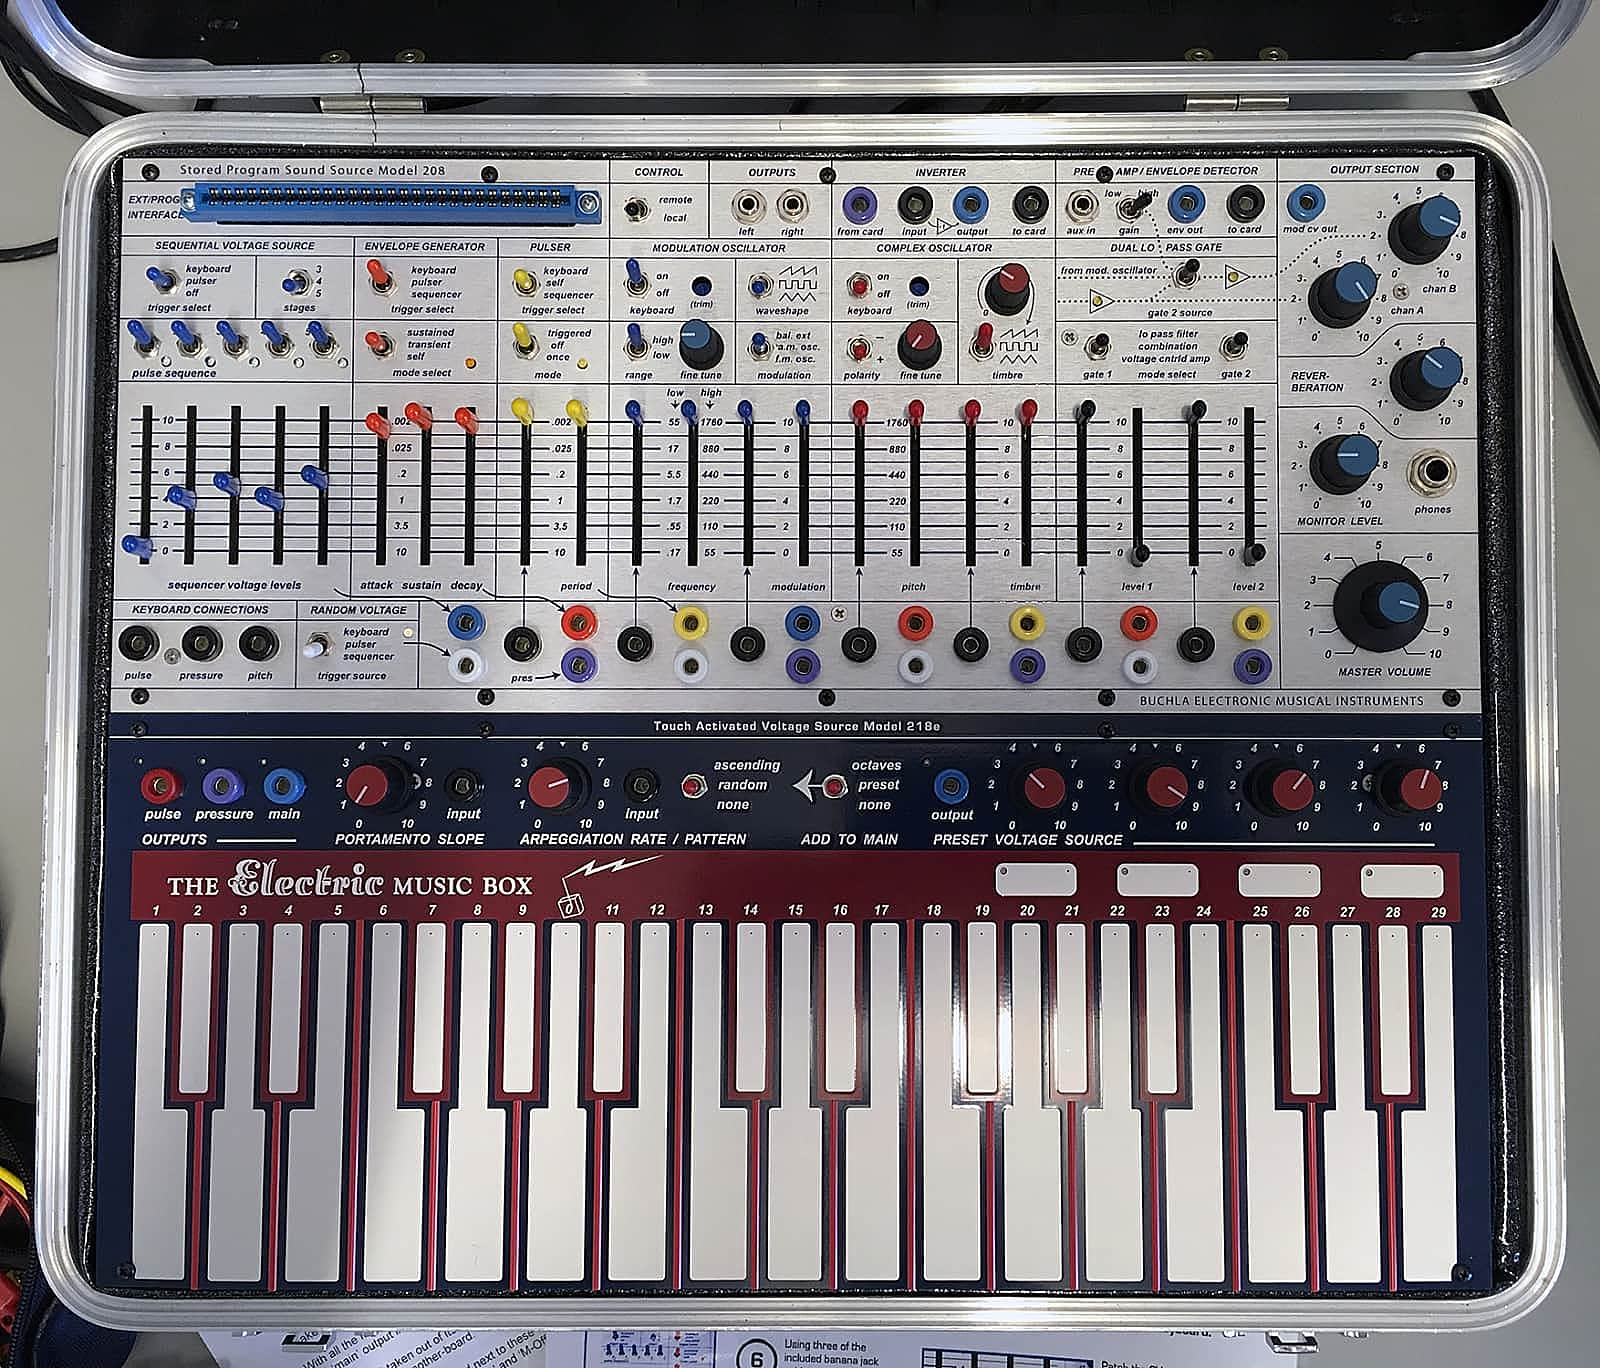 matrixsynth pittsburgh modular synthesizers bemi buchla music easel. Black Bedroom Furniture Sets. Home Design Ideas